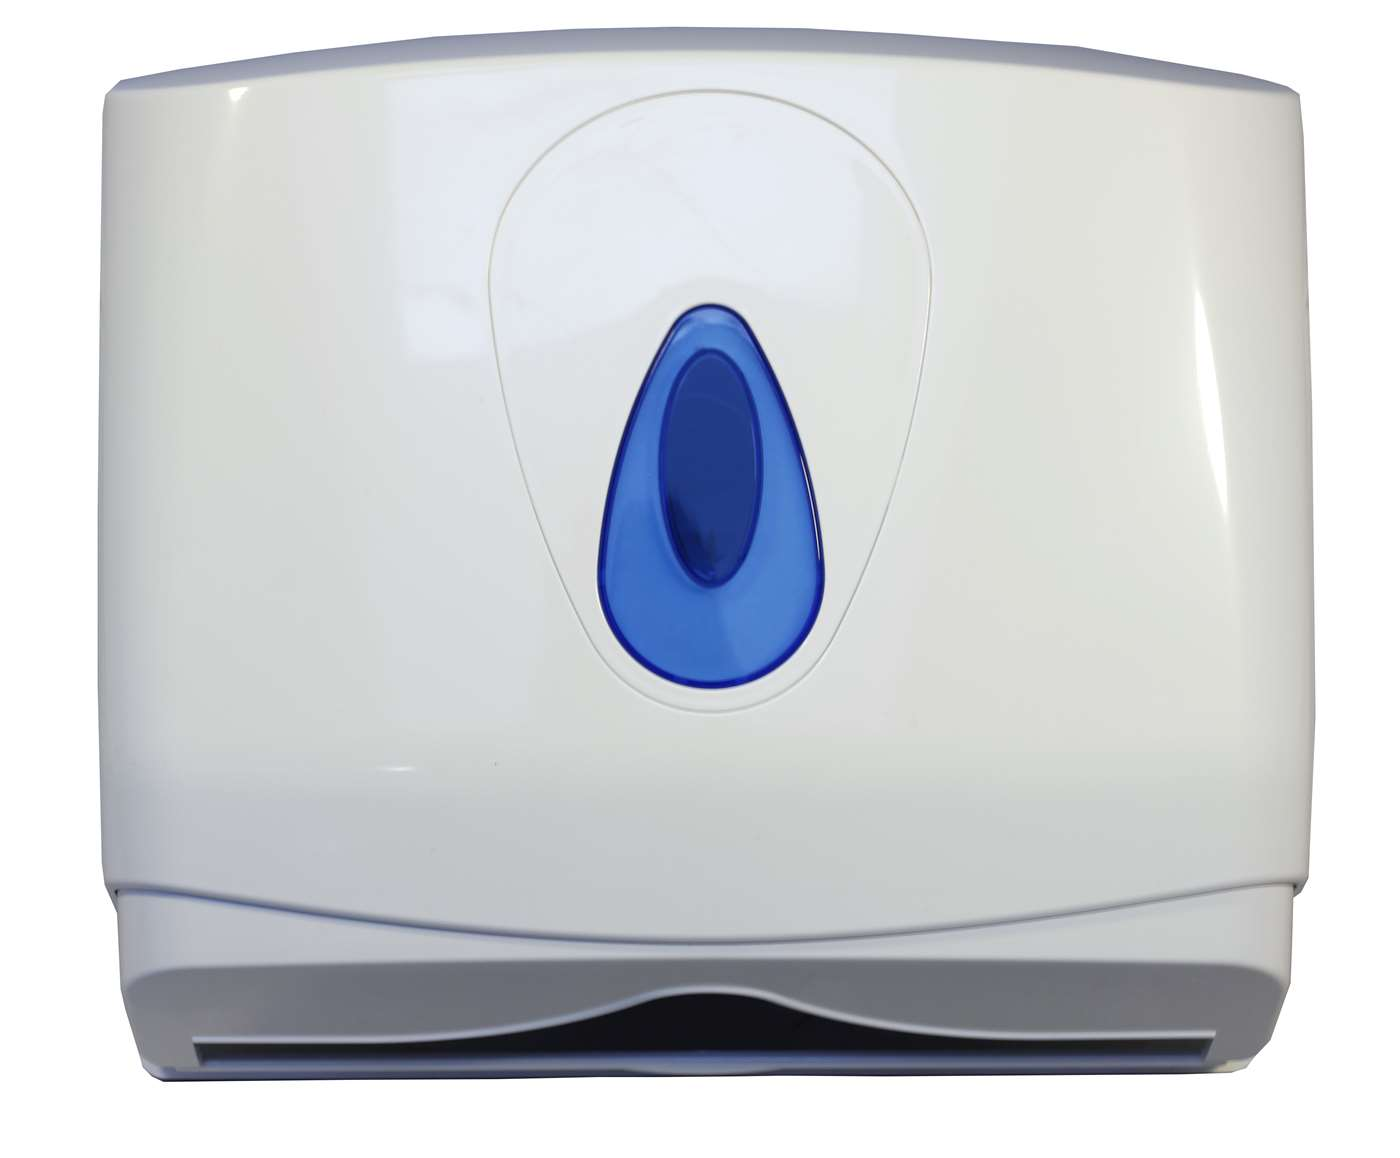 Small Universal Paper Hand Towel Dispenser